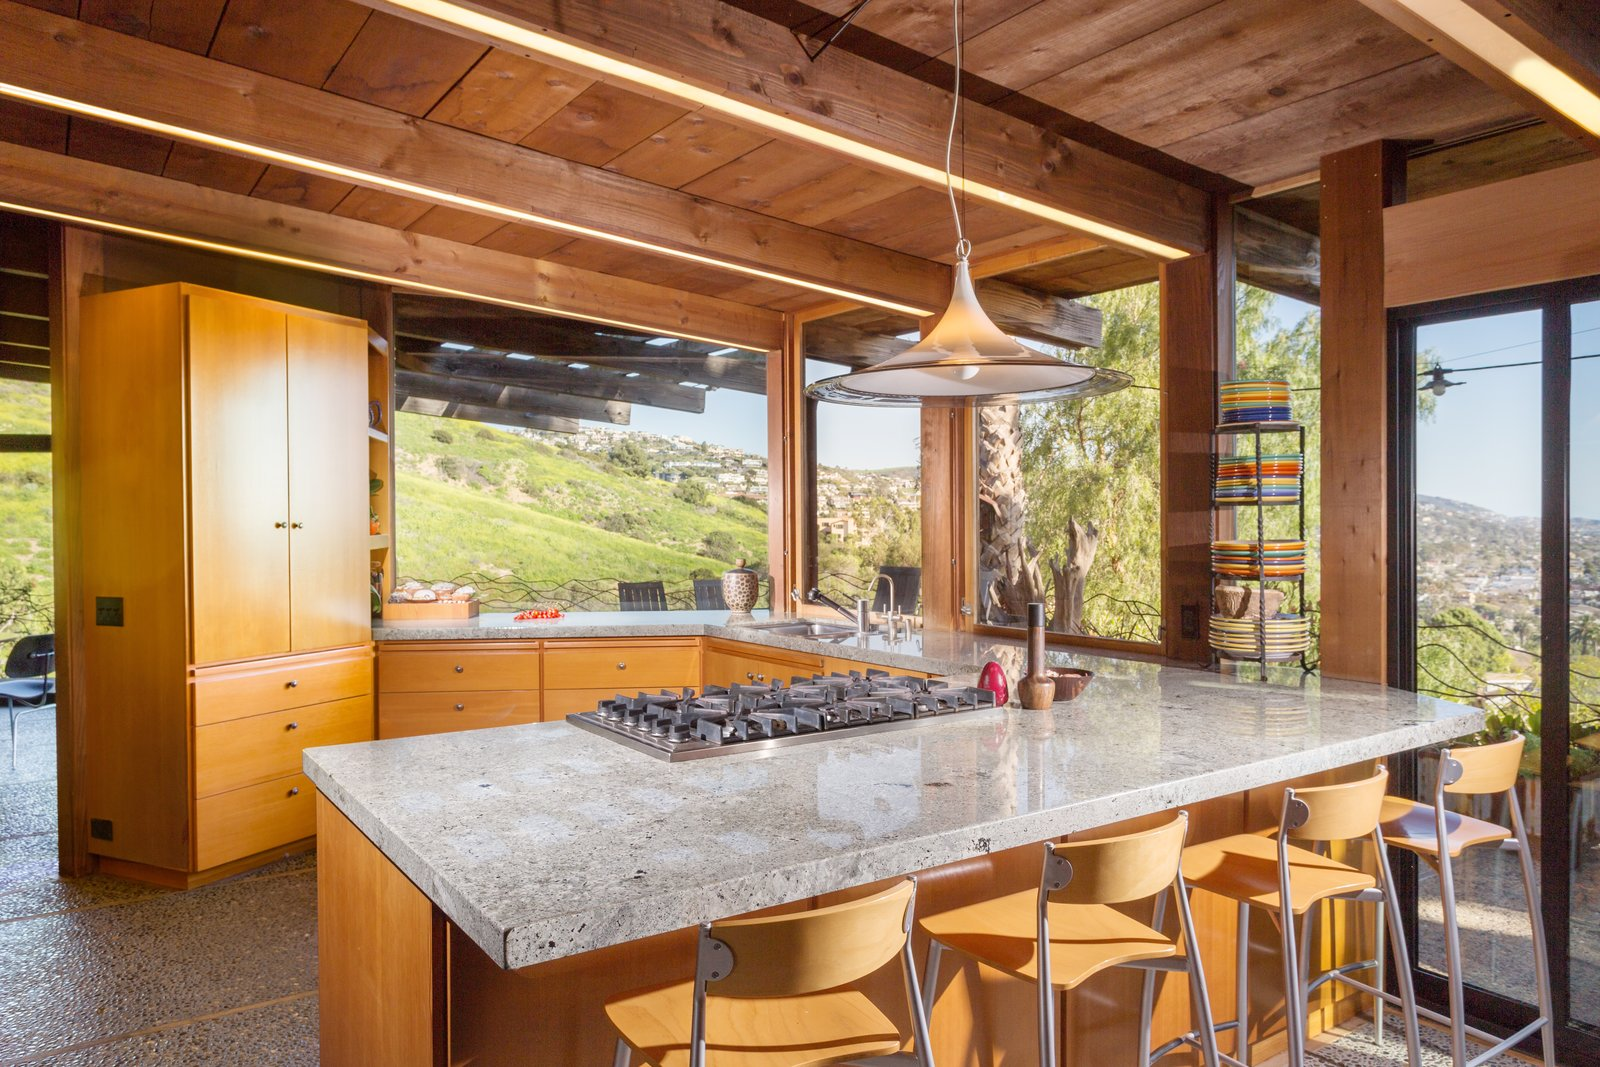 Photo 6 of 13 in A 1974 Masterpiece Is Put on the Market by a Family Friend of the Late Julius Shulman